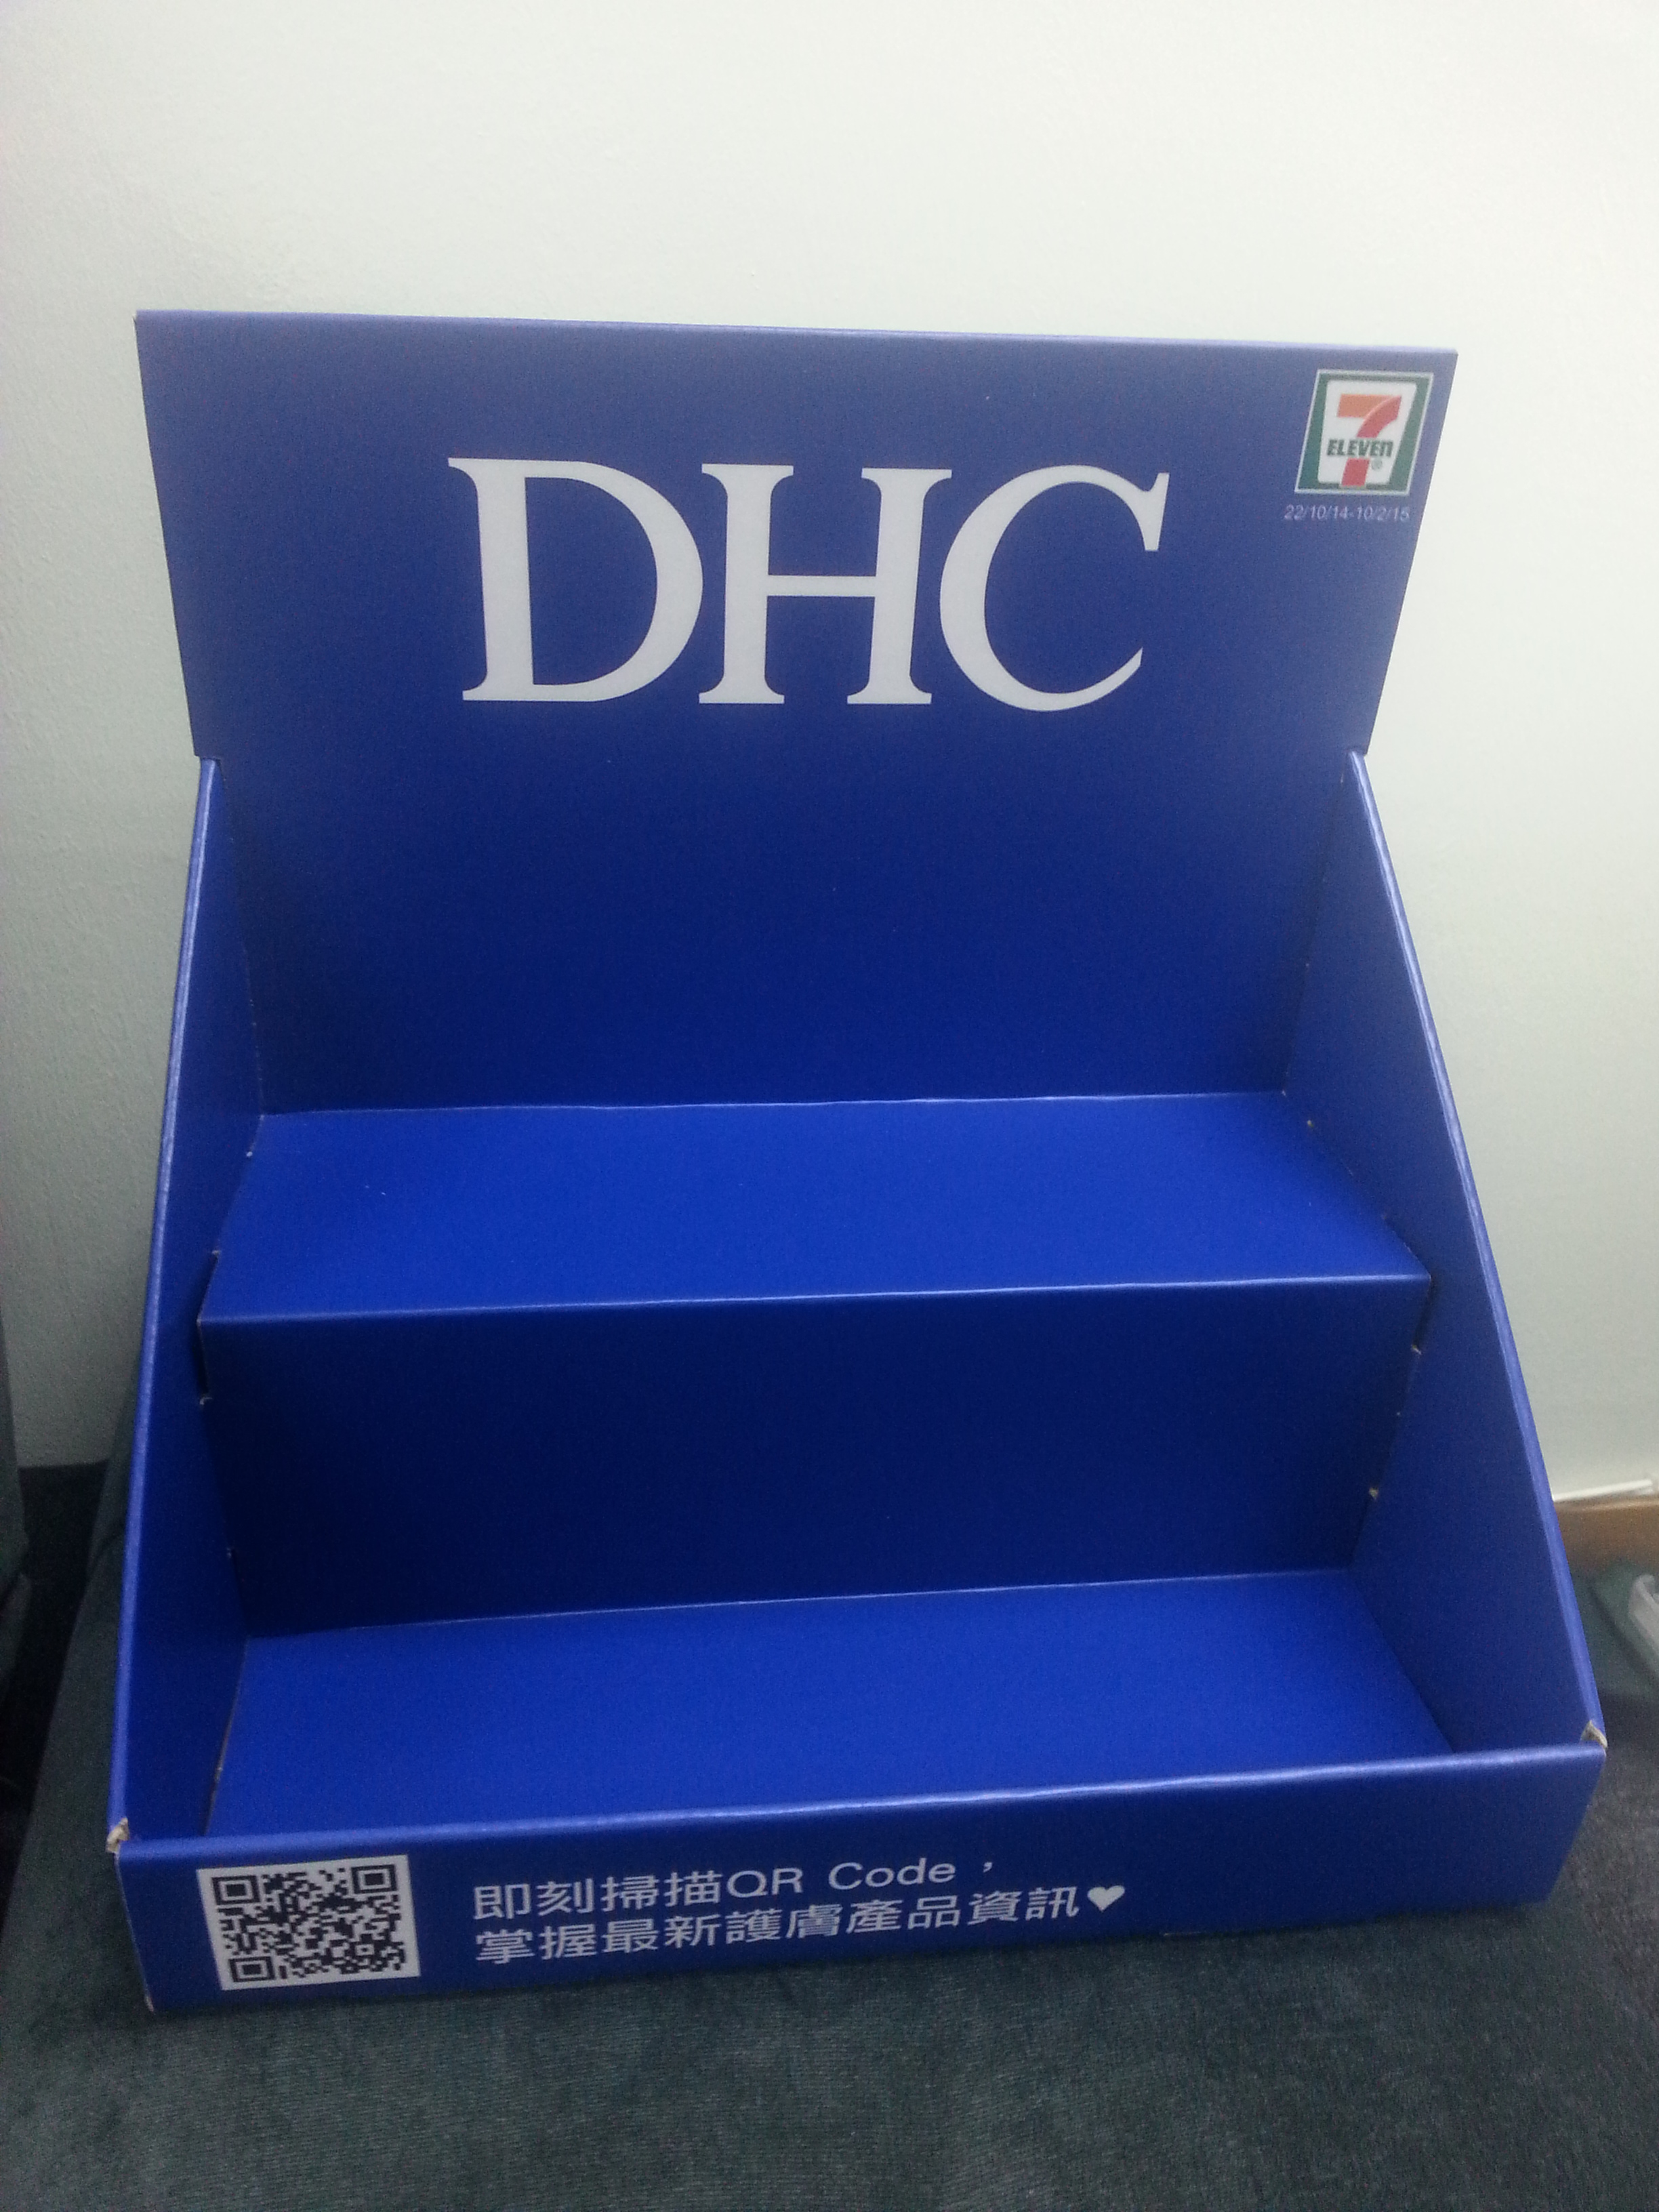 Display Shelf - DHC